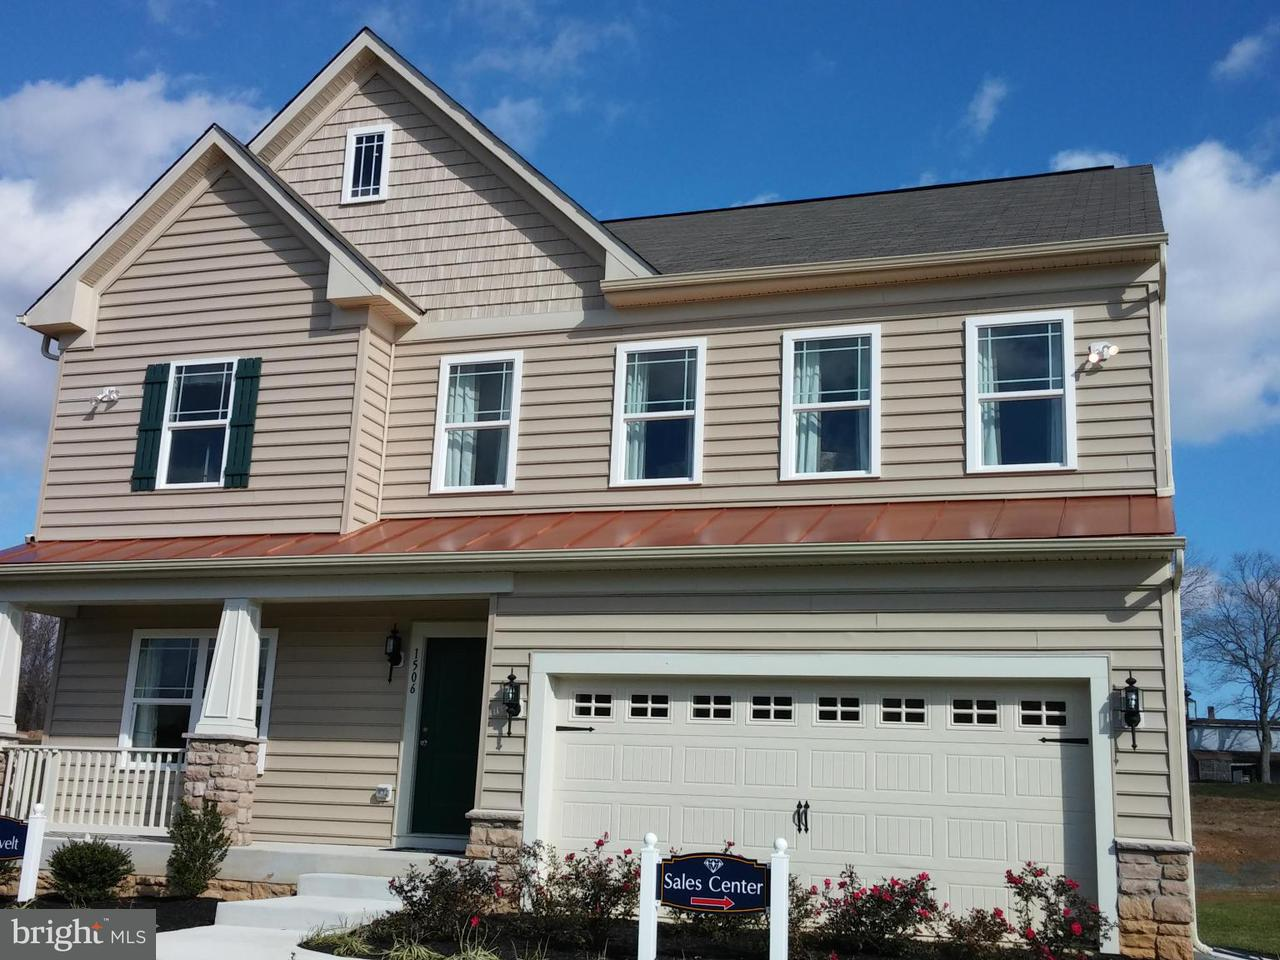 Single Family Home for Sale at 1506 AMERICAN WAY 1506 AMERICAN WAY Aberdeen, Maryland 21001 United States